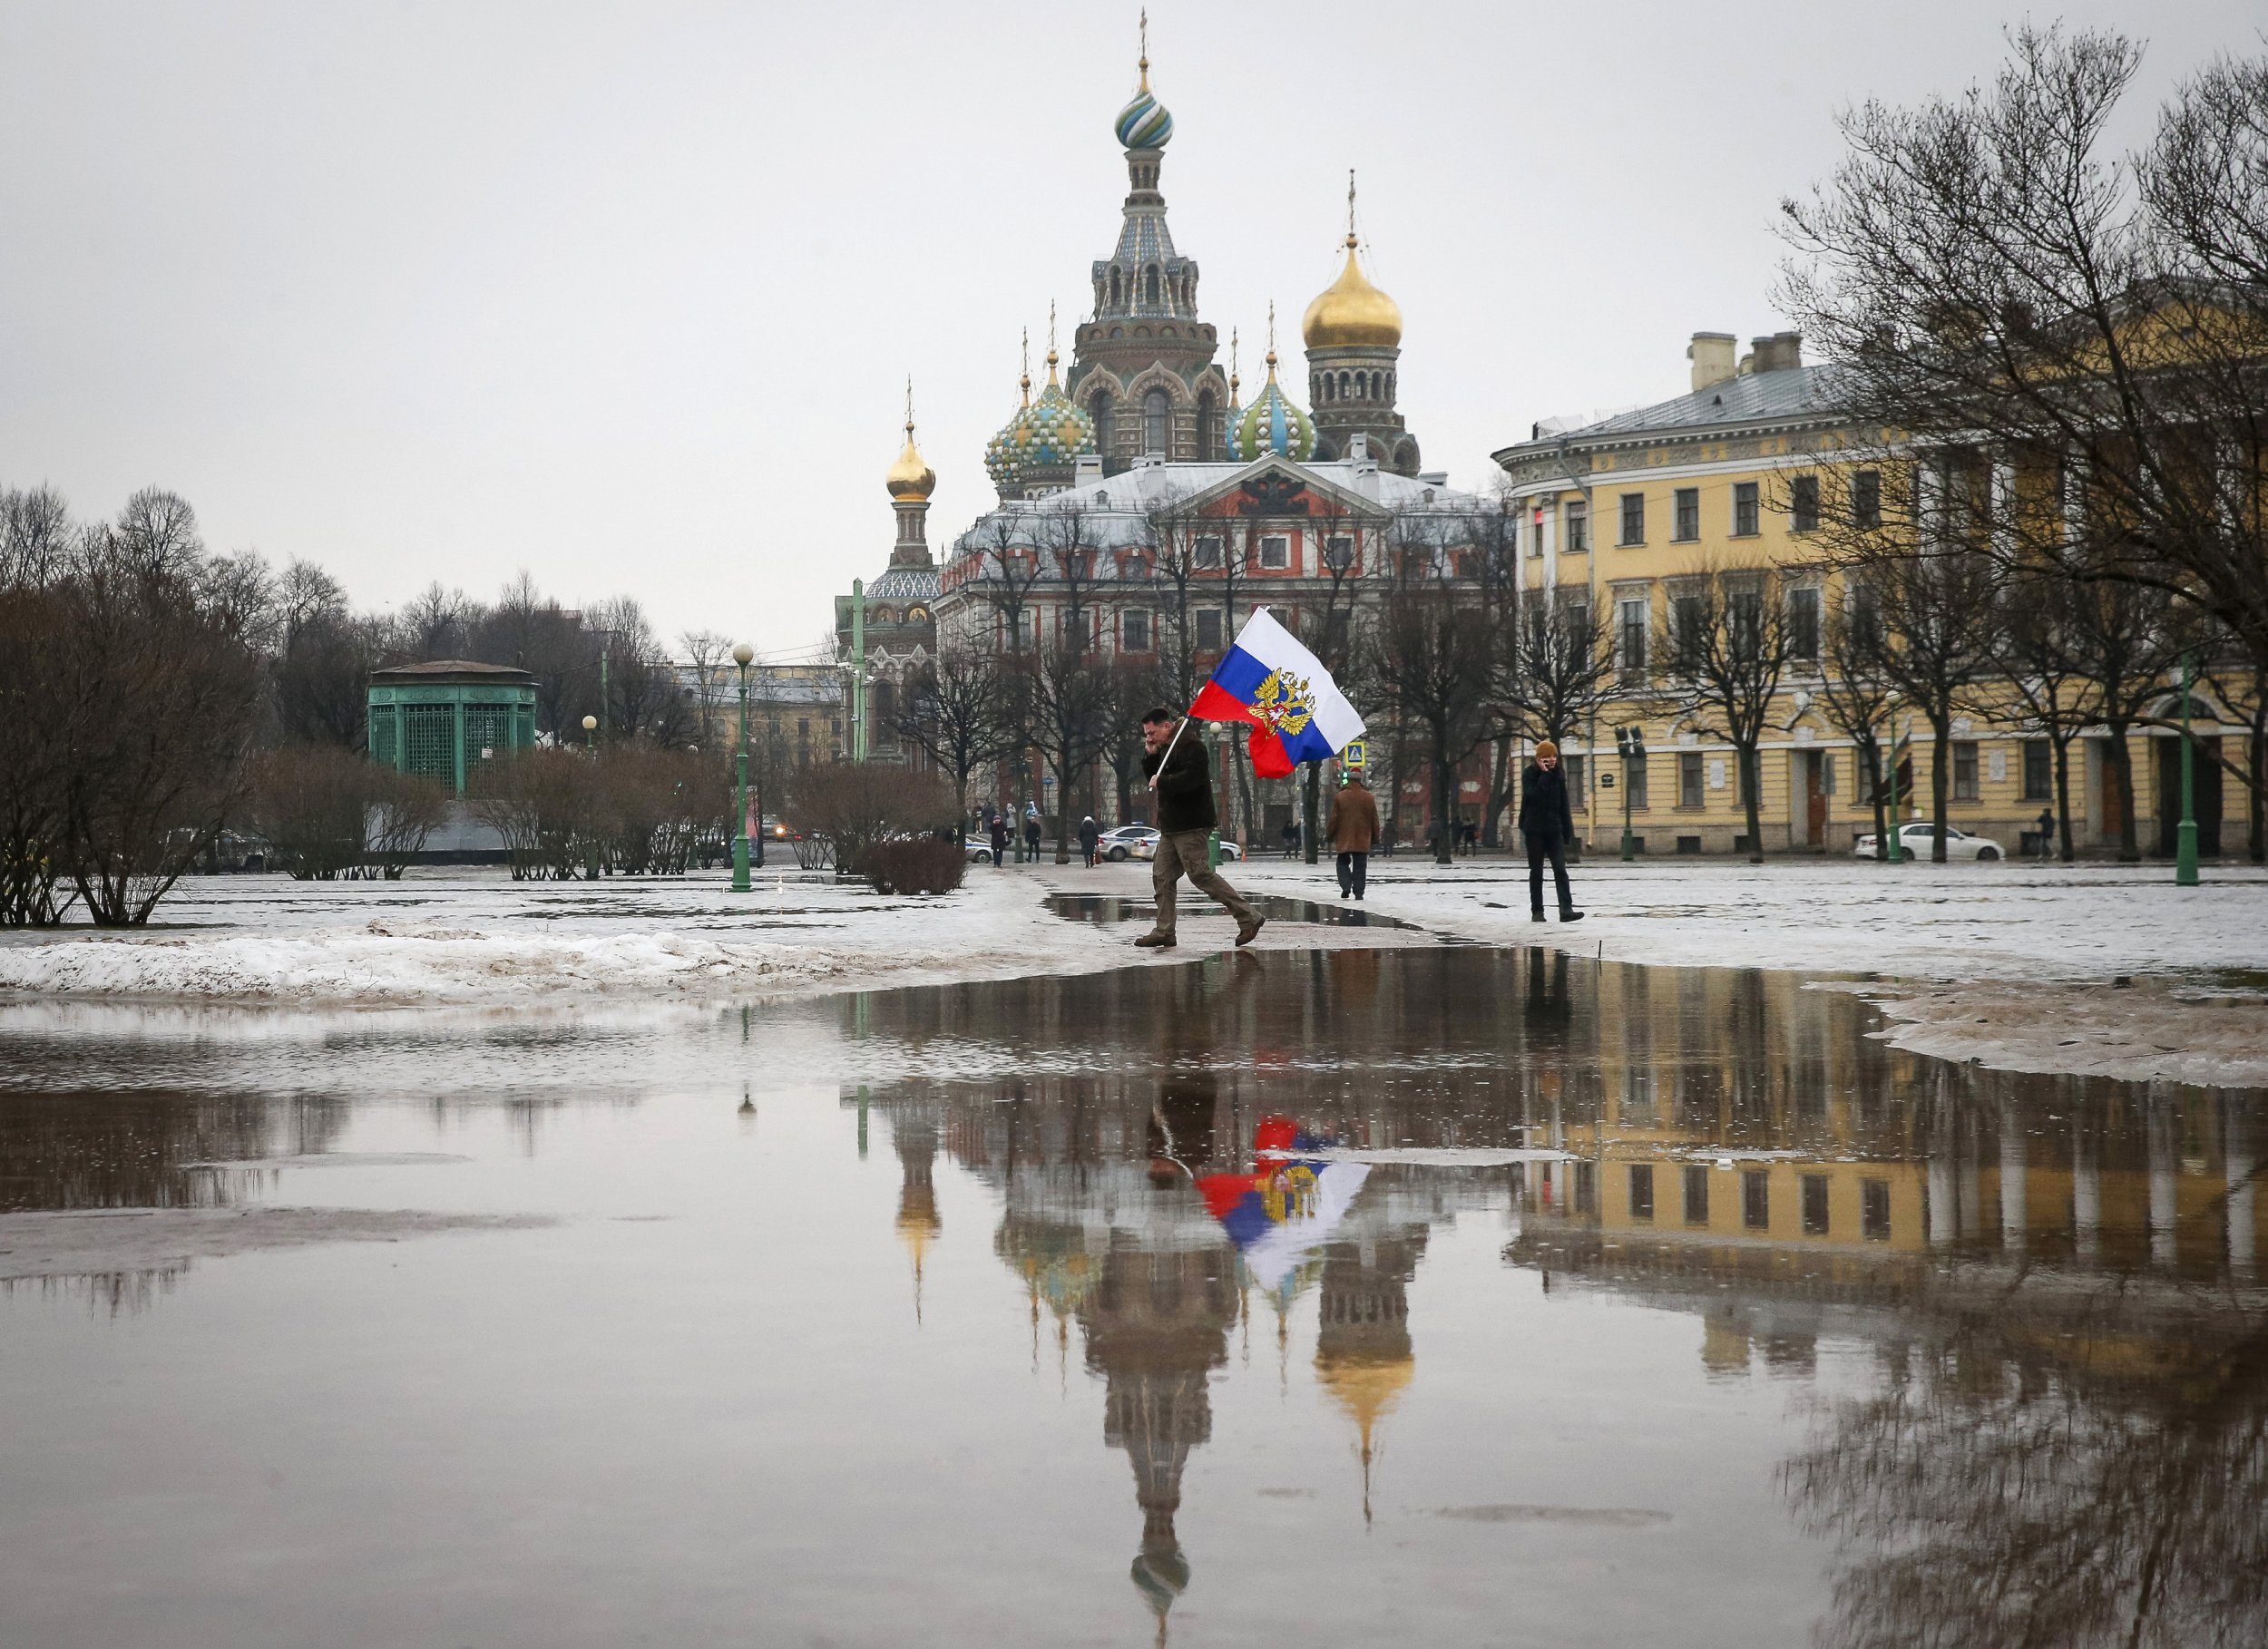 Man walks with a Russian flag in front of an ornate church